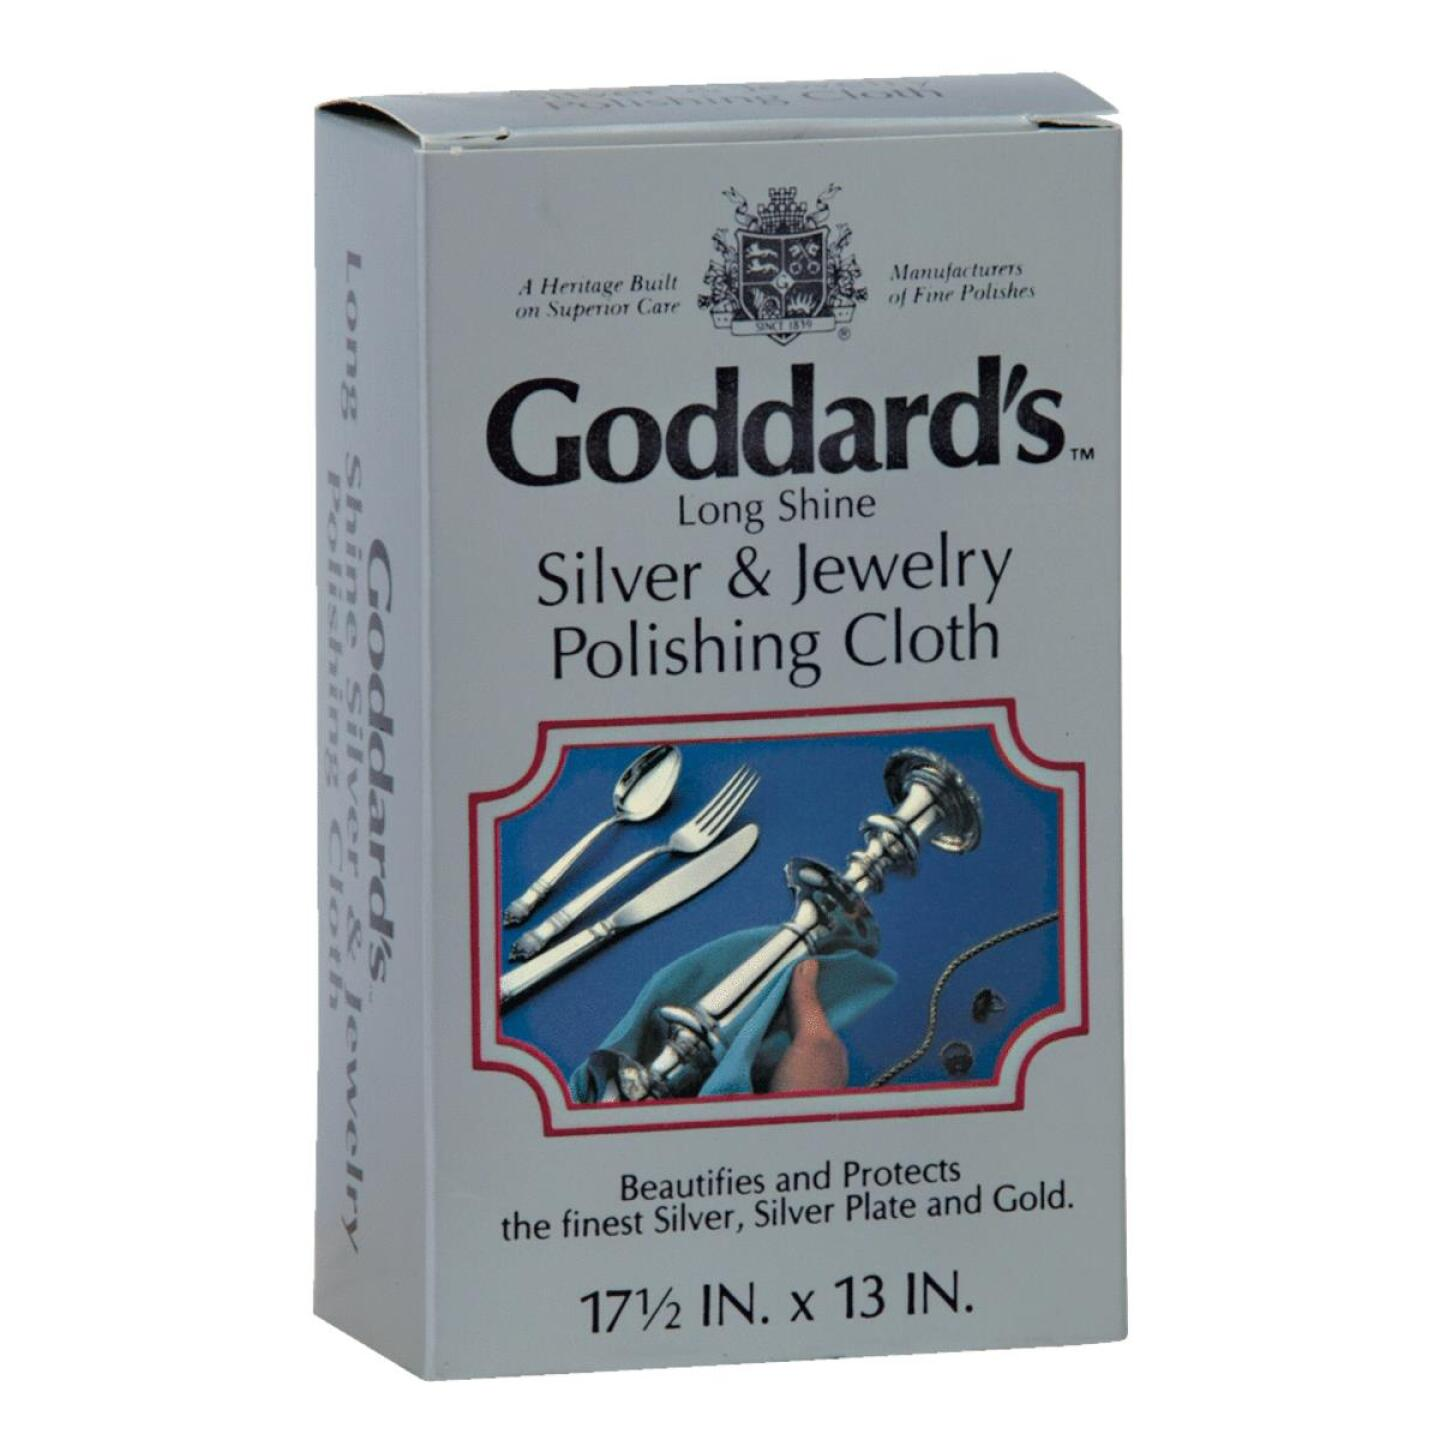 Goddard's Long Shine Silver & Jewelry Polishing Cloth Image 1